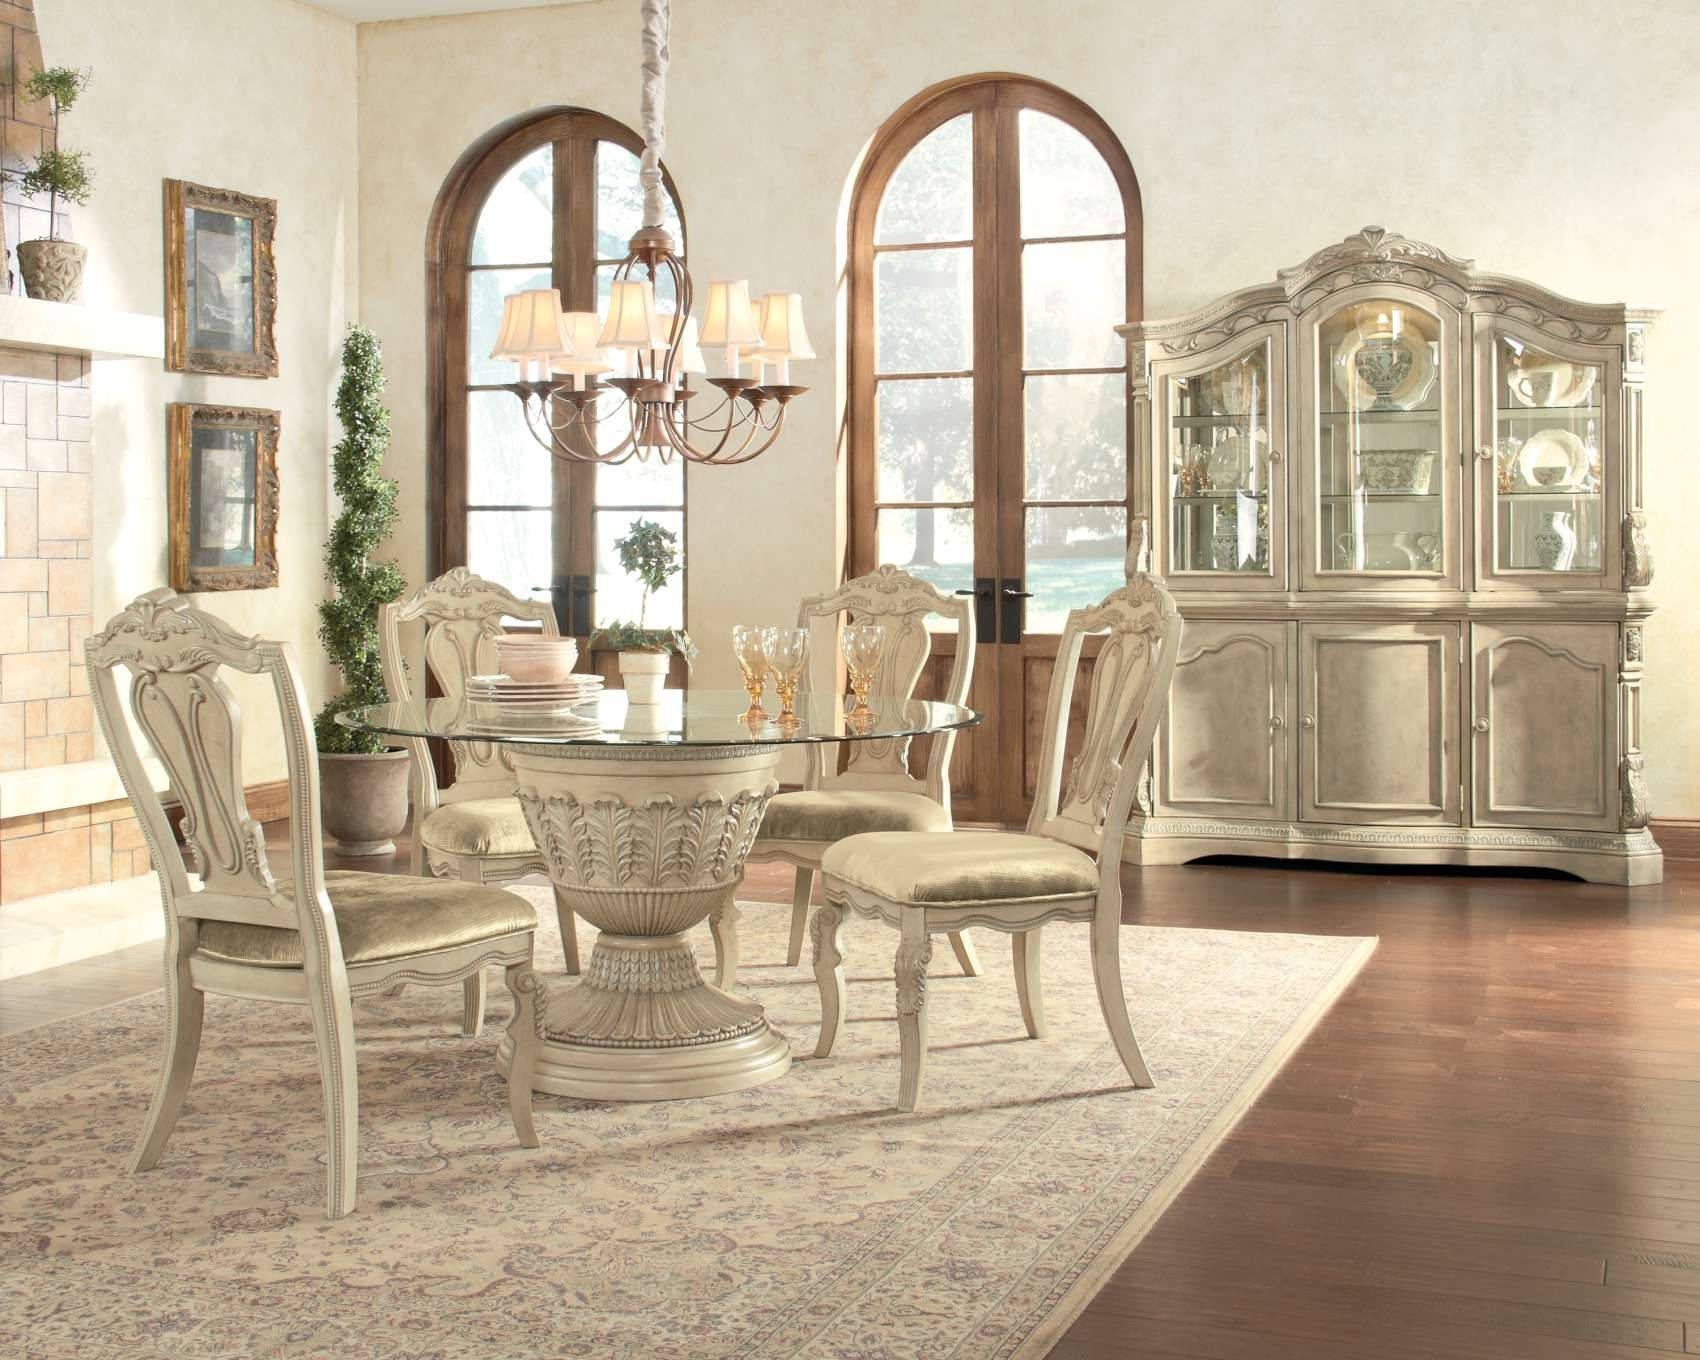 Ortanique Dining Table by Ashley Furniture